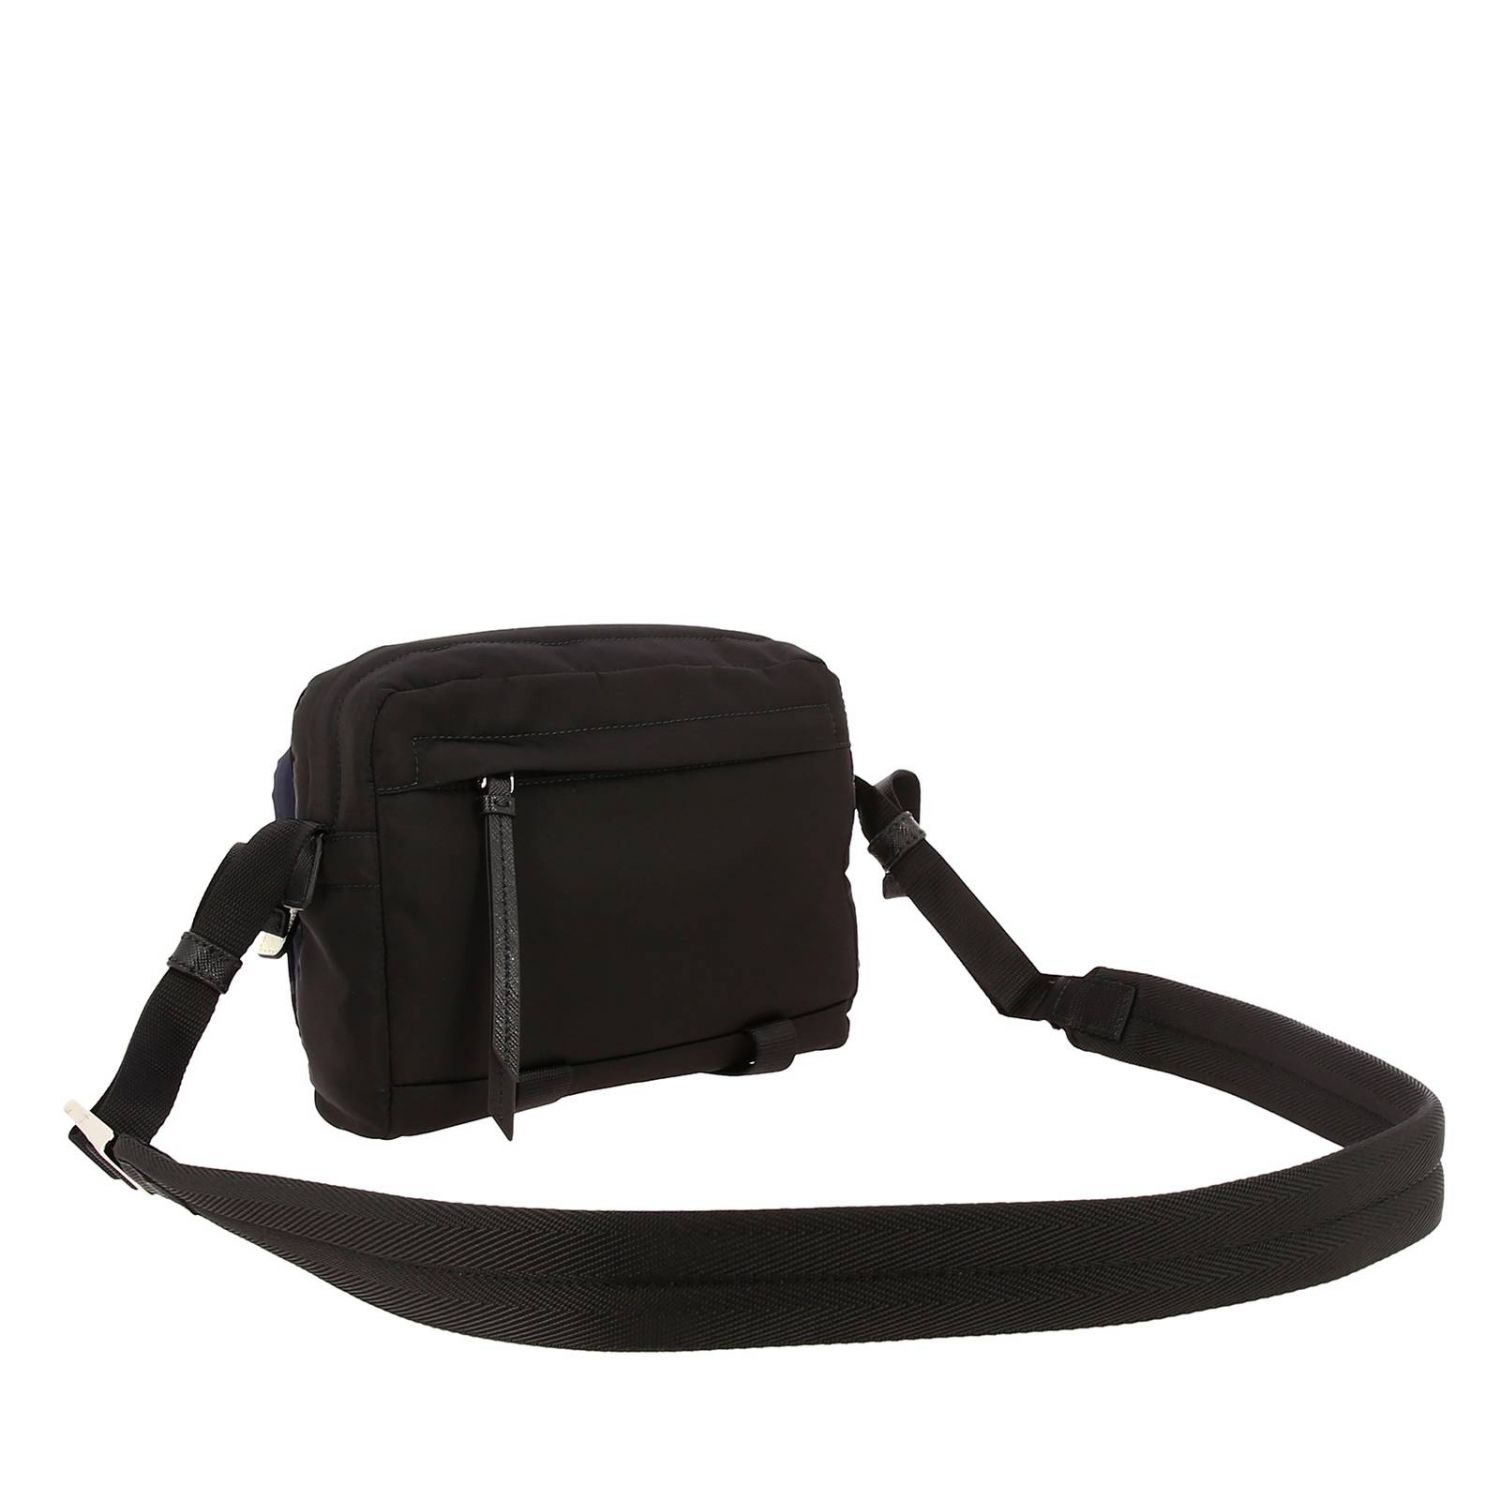 Bandolier Camera Bag in Nylon with camouflage details and contrasts black 3